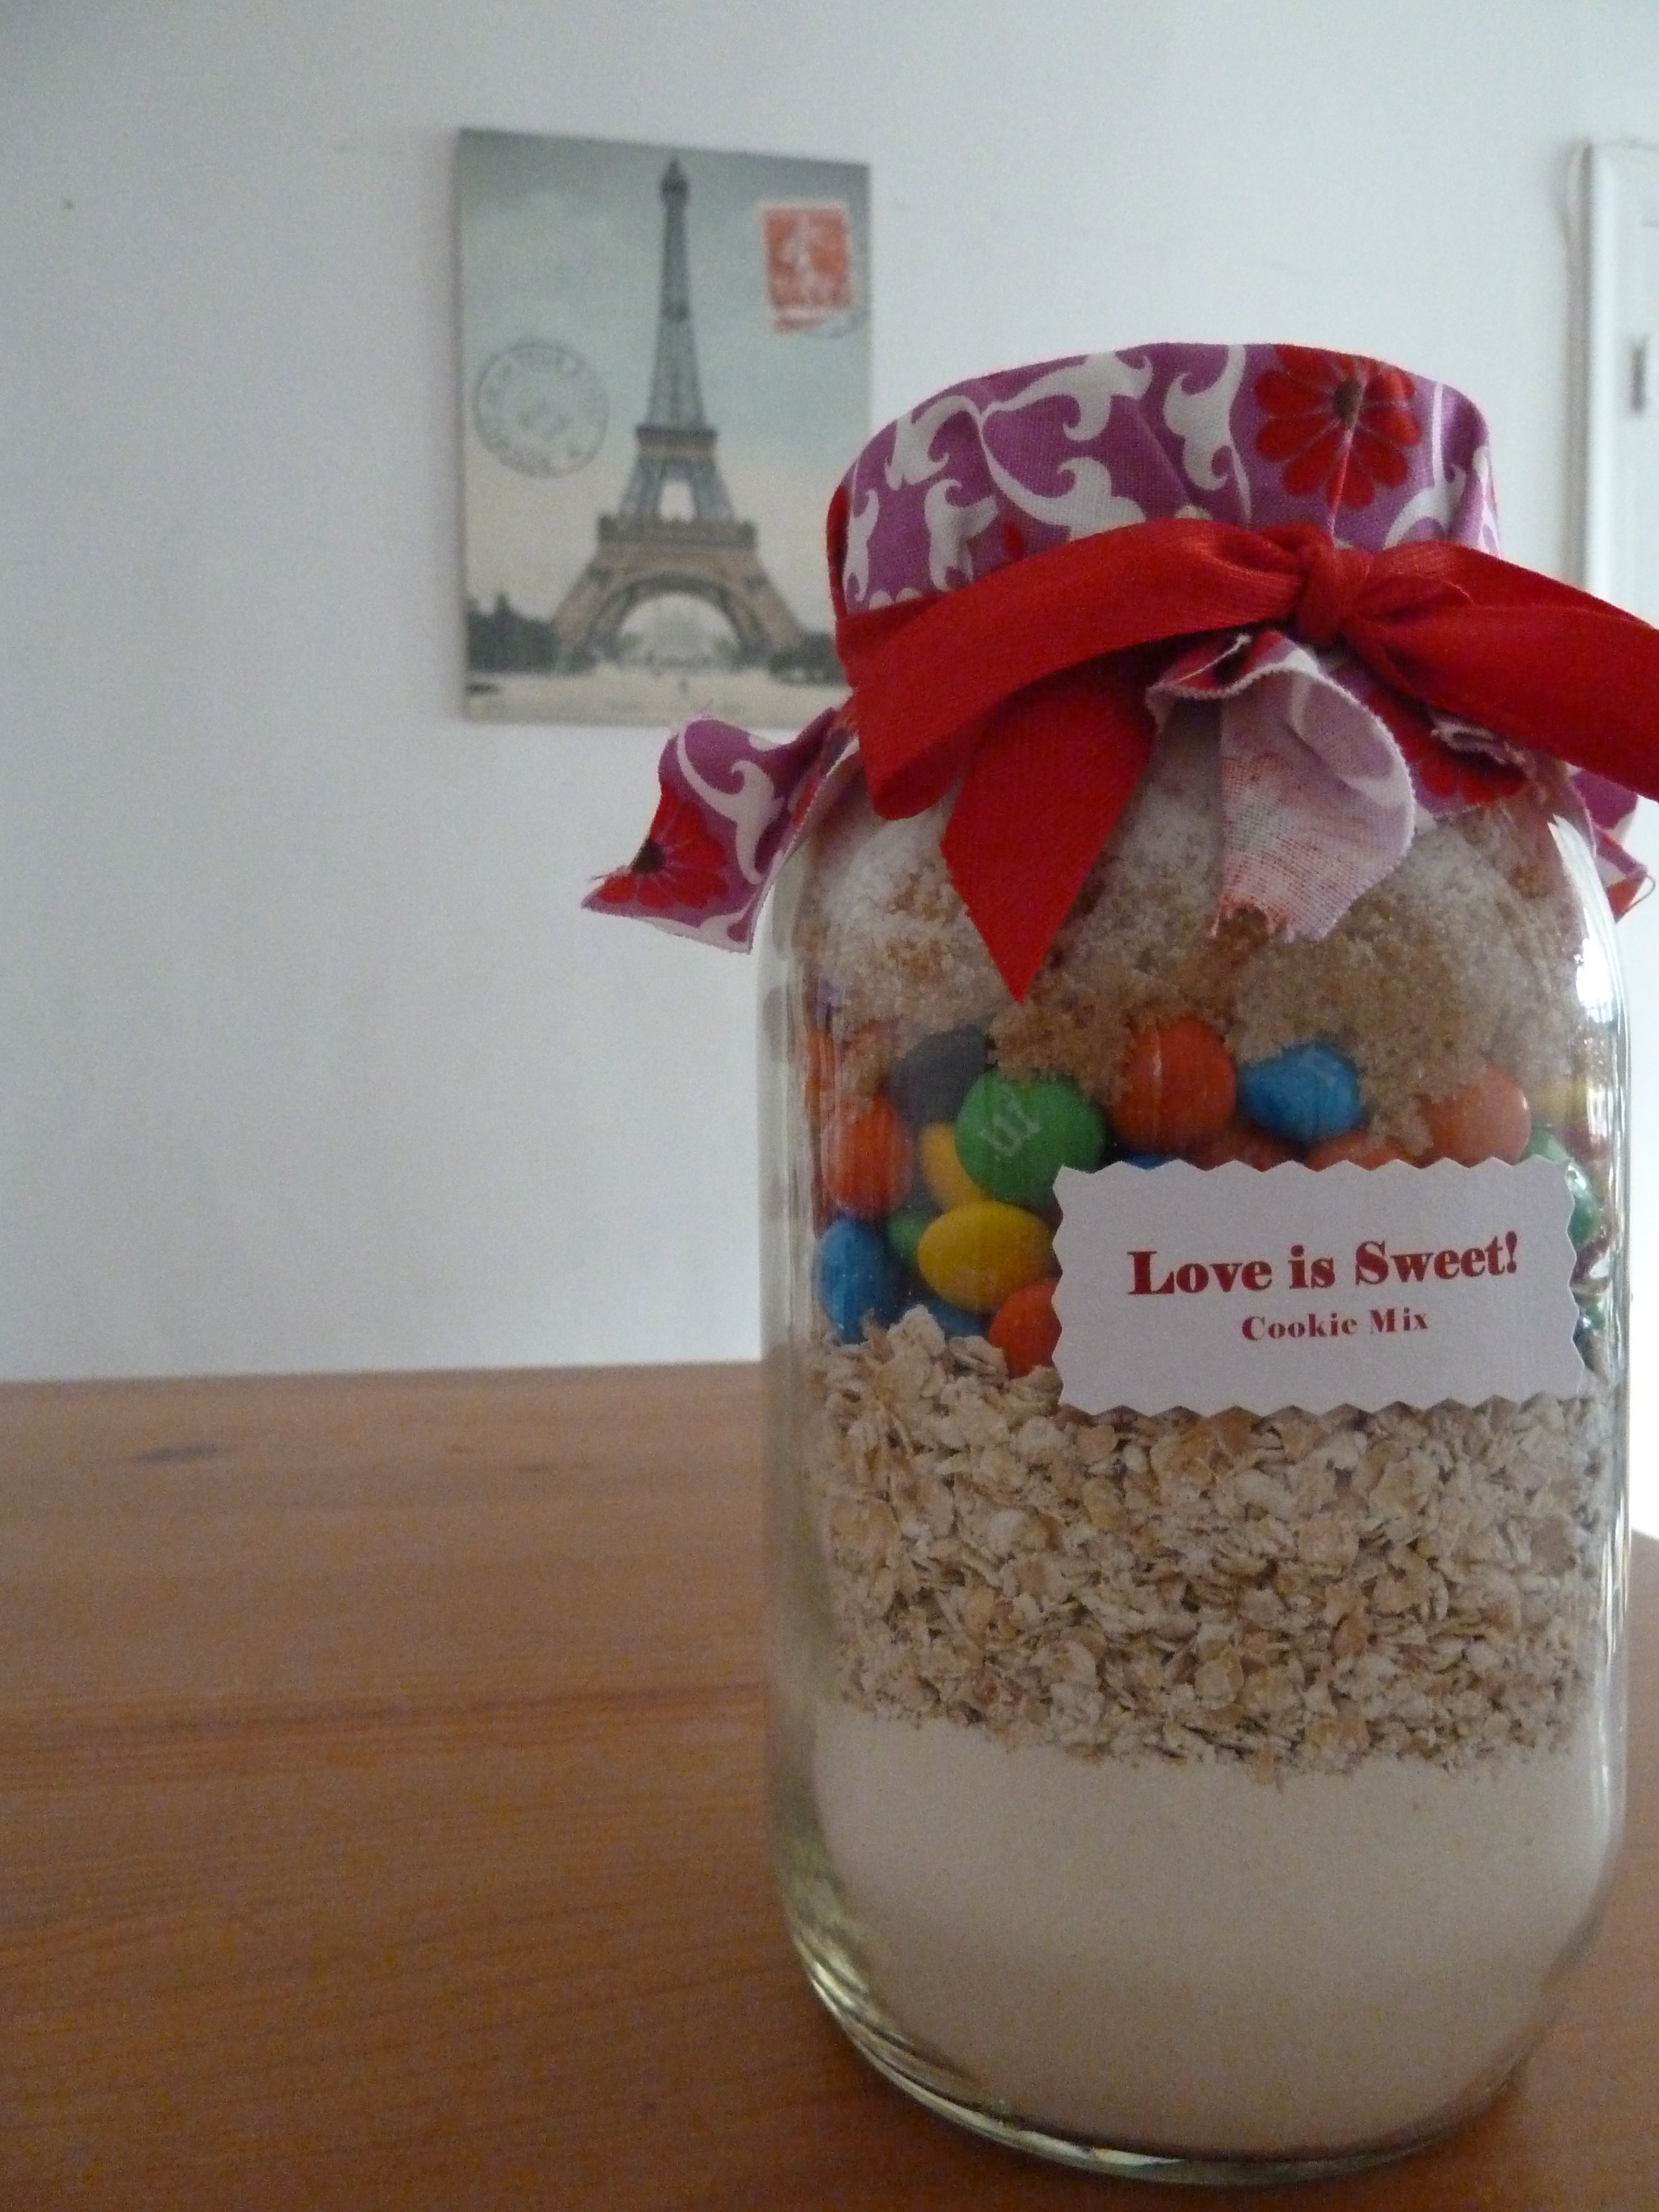 10 Most Popular Homemade Bridal Shower Gift Ideas cute diy bridal shower favor love is sweet cookie mix a favor 1